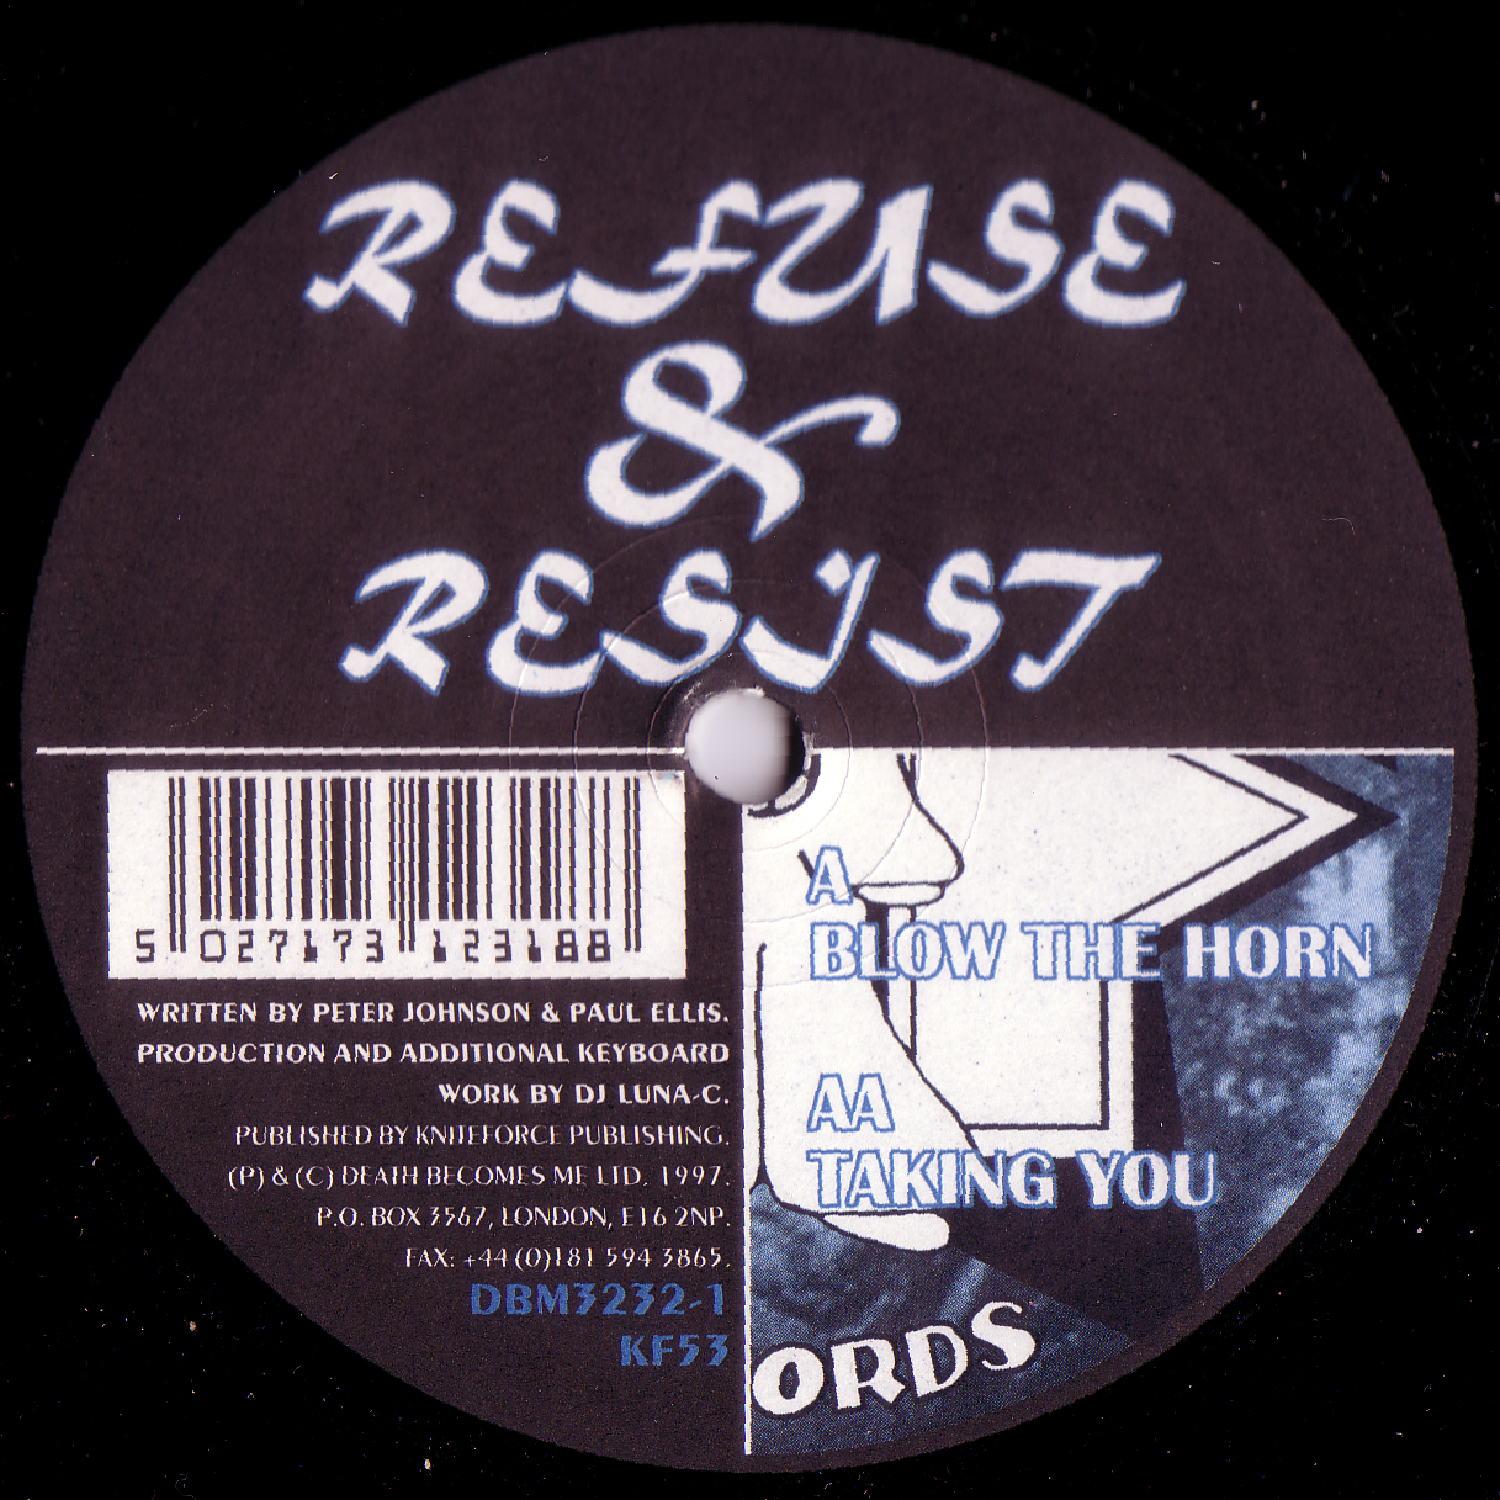 [KF053] Refuse & Resist - Blow The Horn EP (Digital Only)